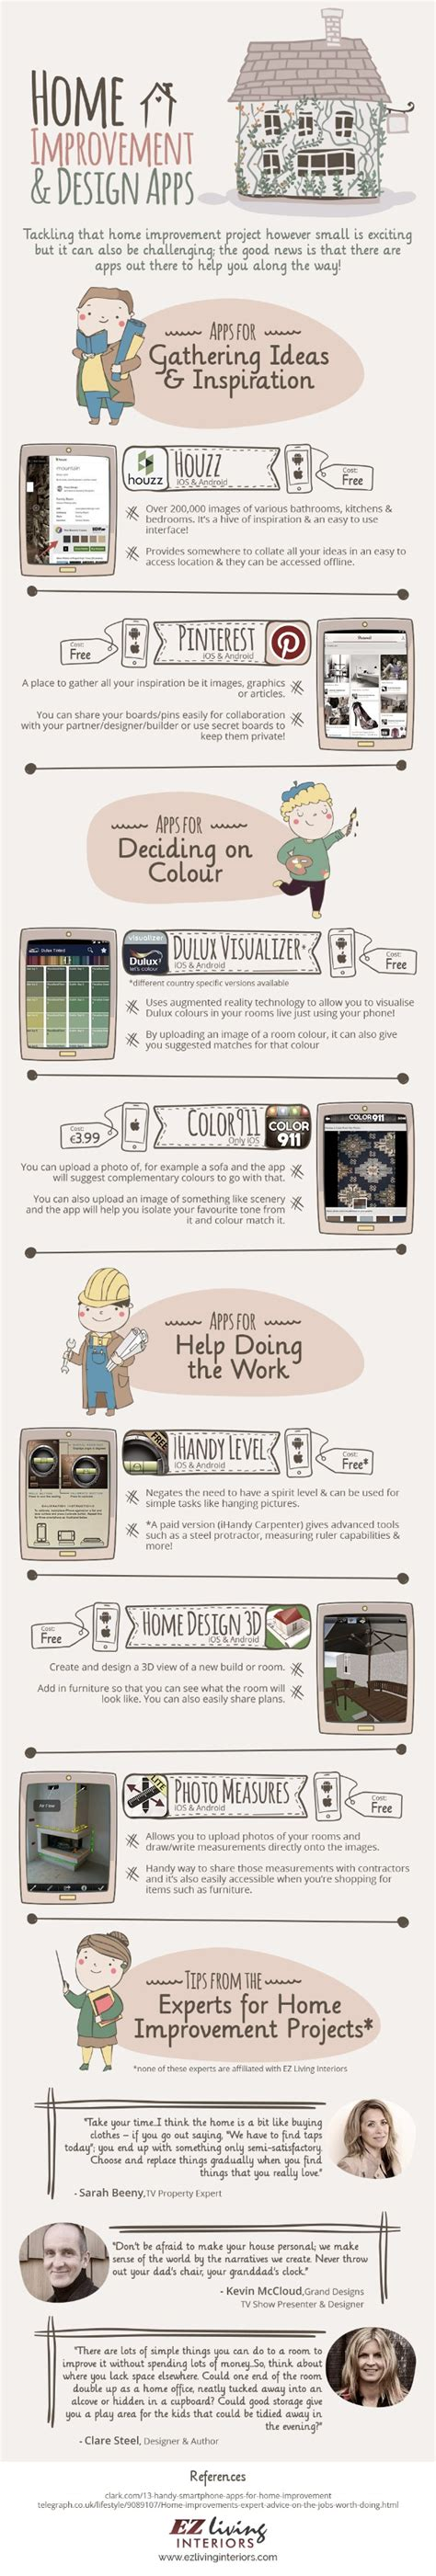 home improvement project management app 7 helpful home improvement and design apps infographic